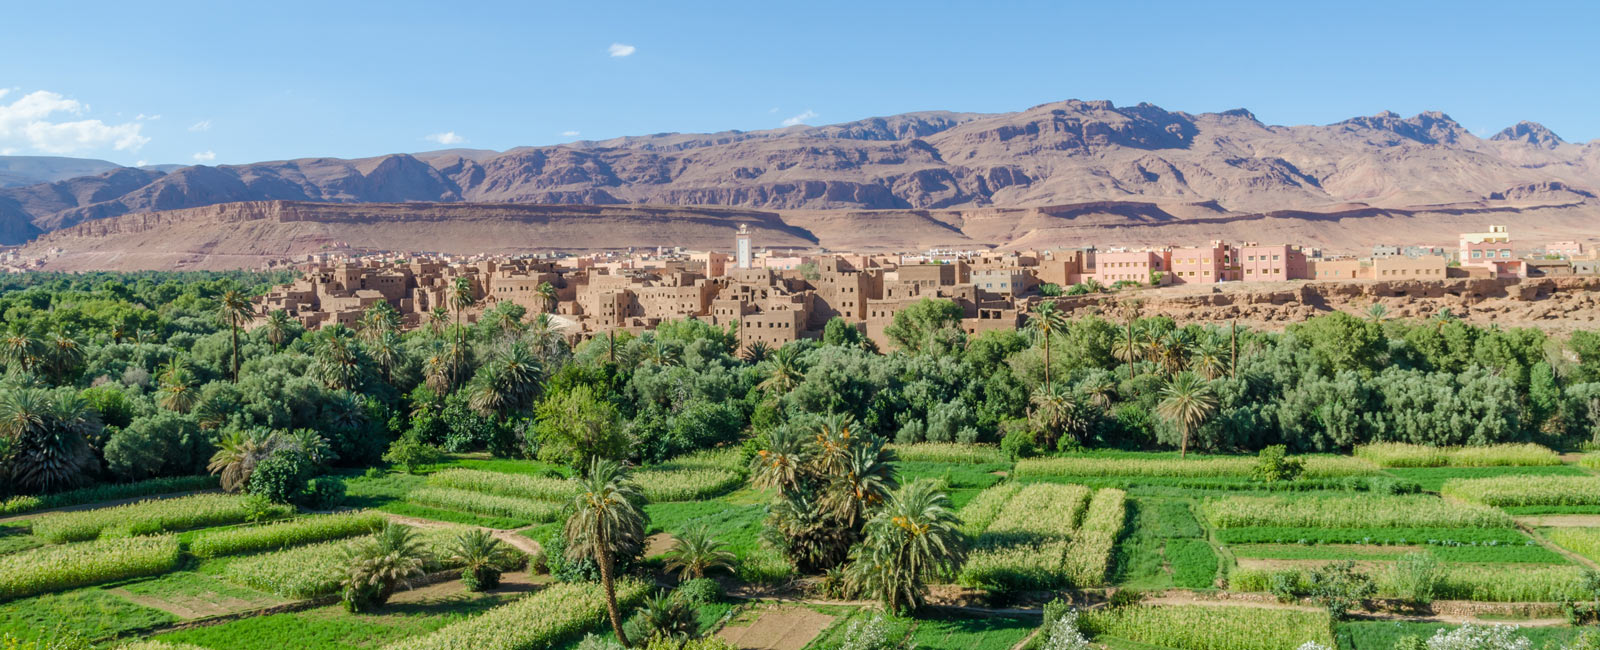 IFOAM – Organics International Supporting the Growth of Organic in Morocco